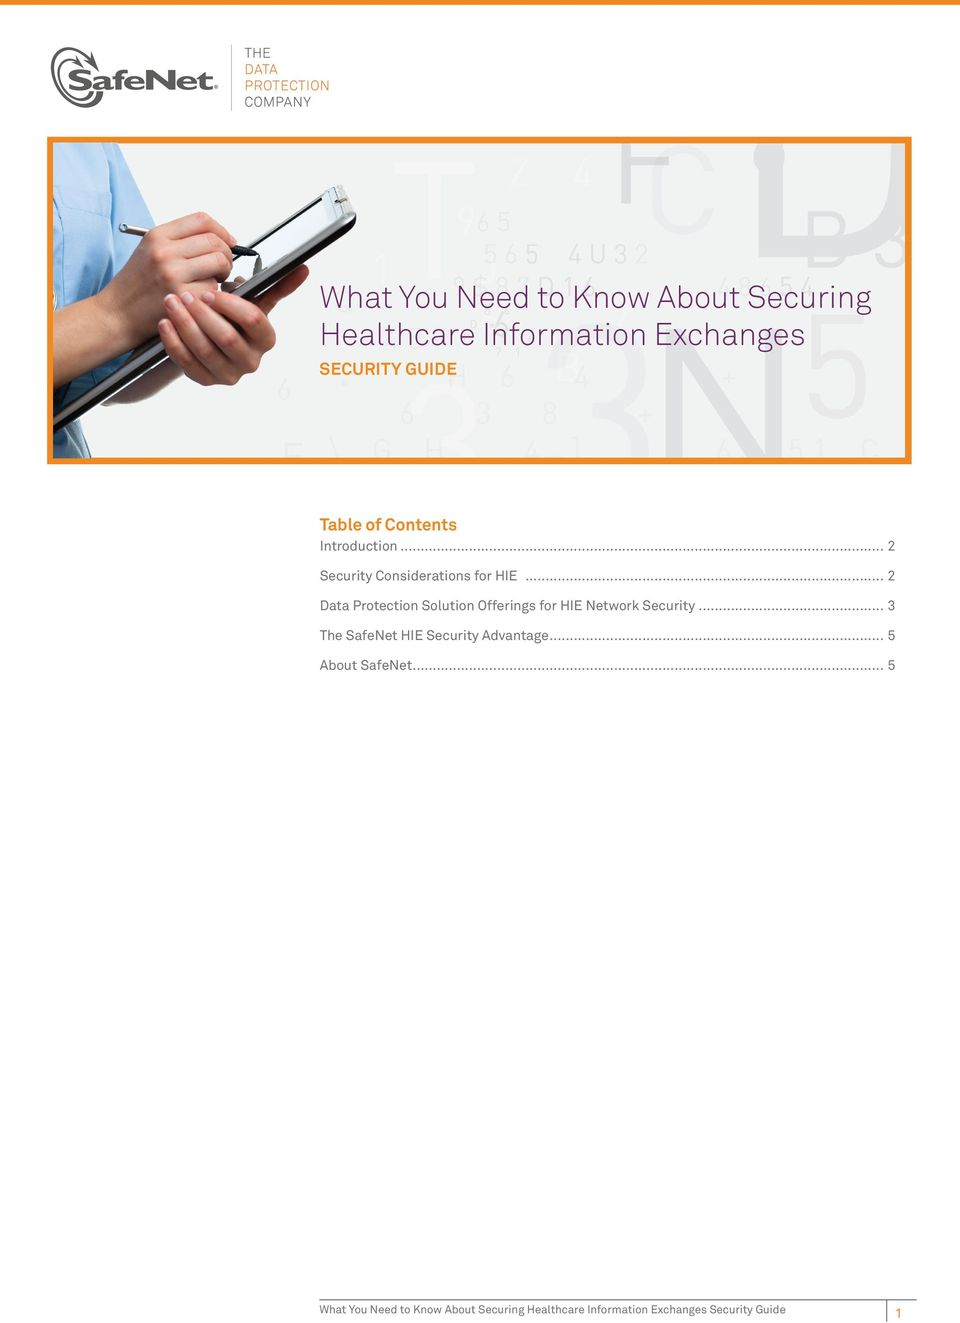 .. 2 Data Protection Solution Offerings for HIE Network Security.